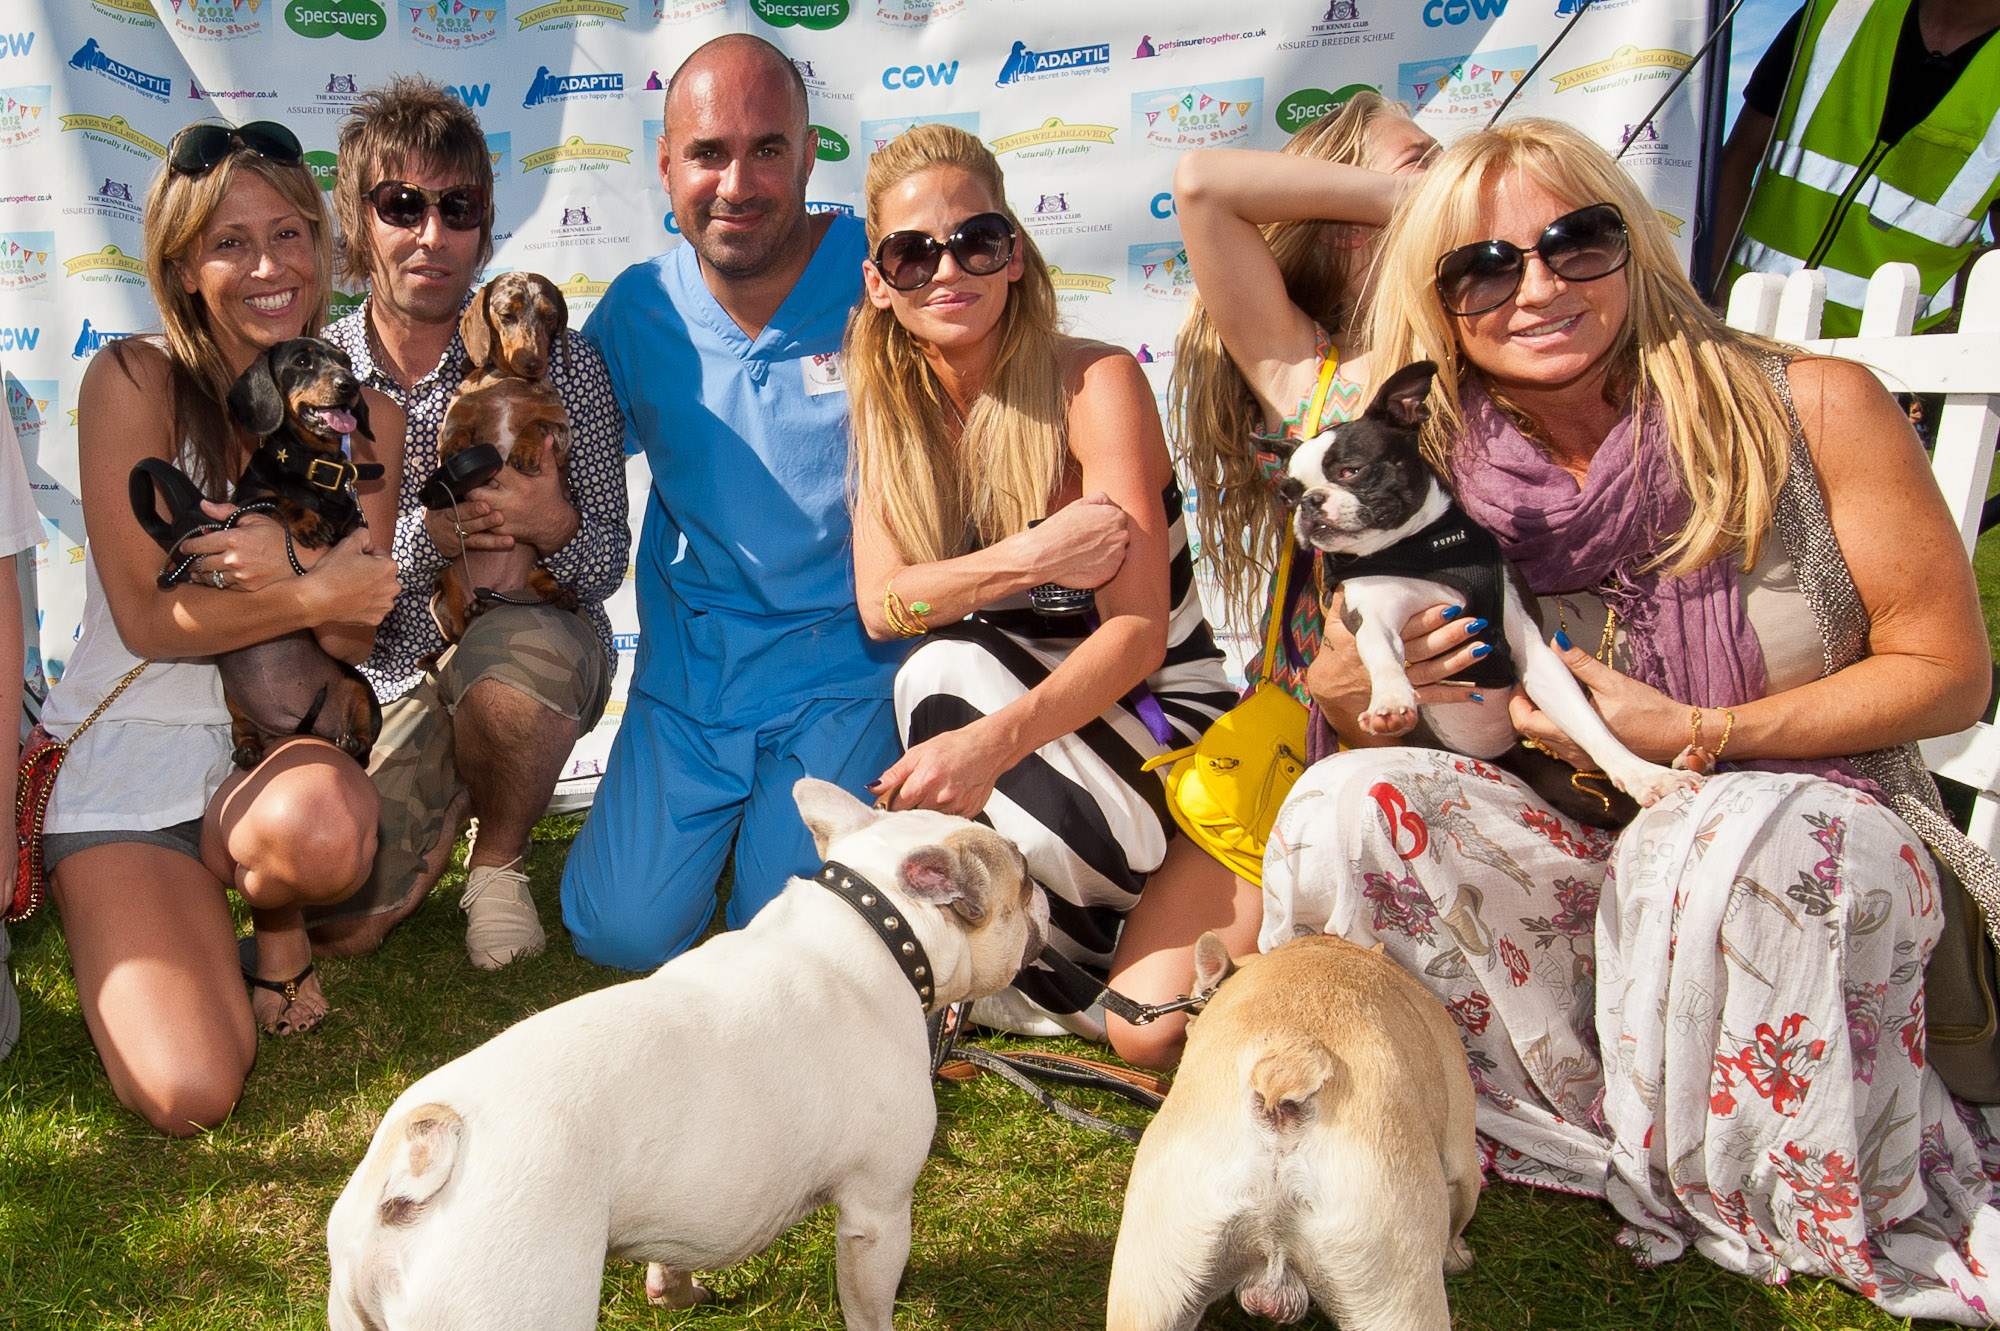 Stars including Liam Gallagher, Sarah Harding, Ricky Gervais, Meg Matthews and Brian May come out to support Pup Aid at celebrity judged fun dog show held to raise awareness of Puppy Farming. www.Pupaid.org Primrose Hill, London, UK Saturday 8th September